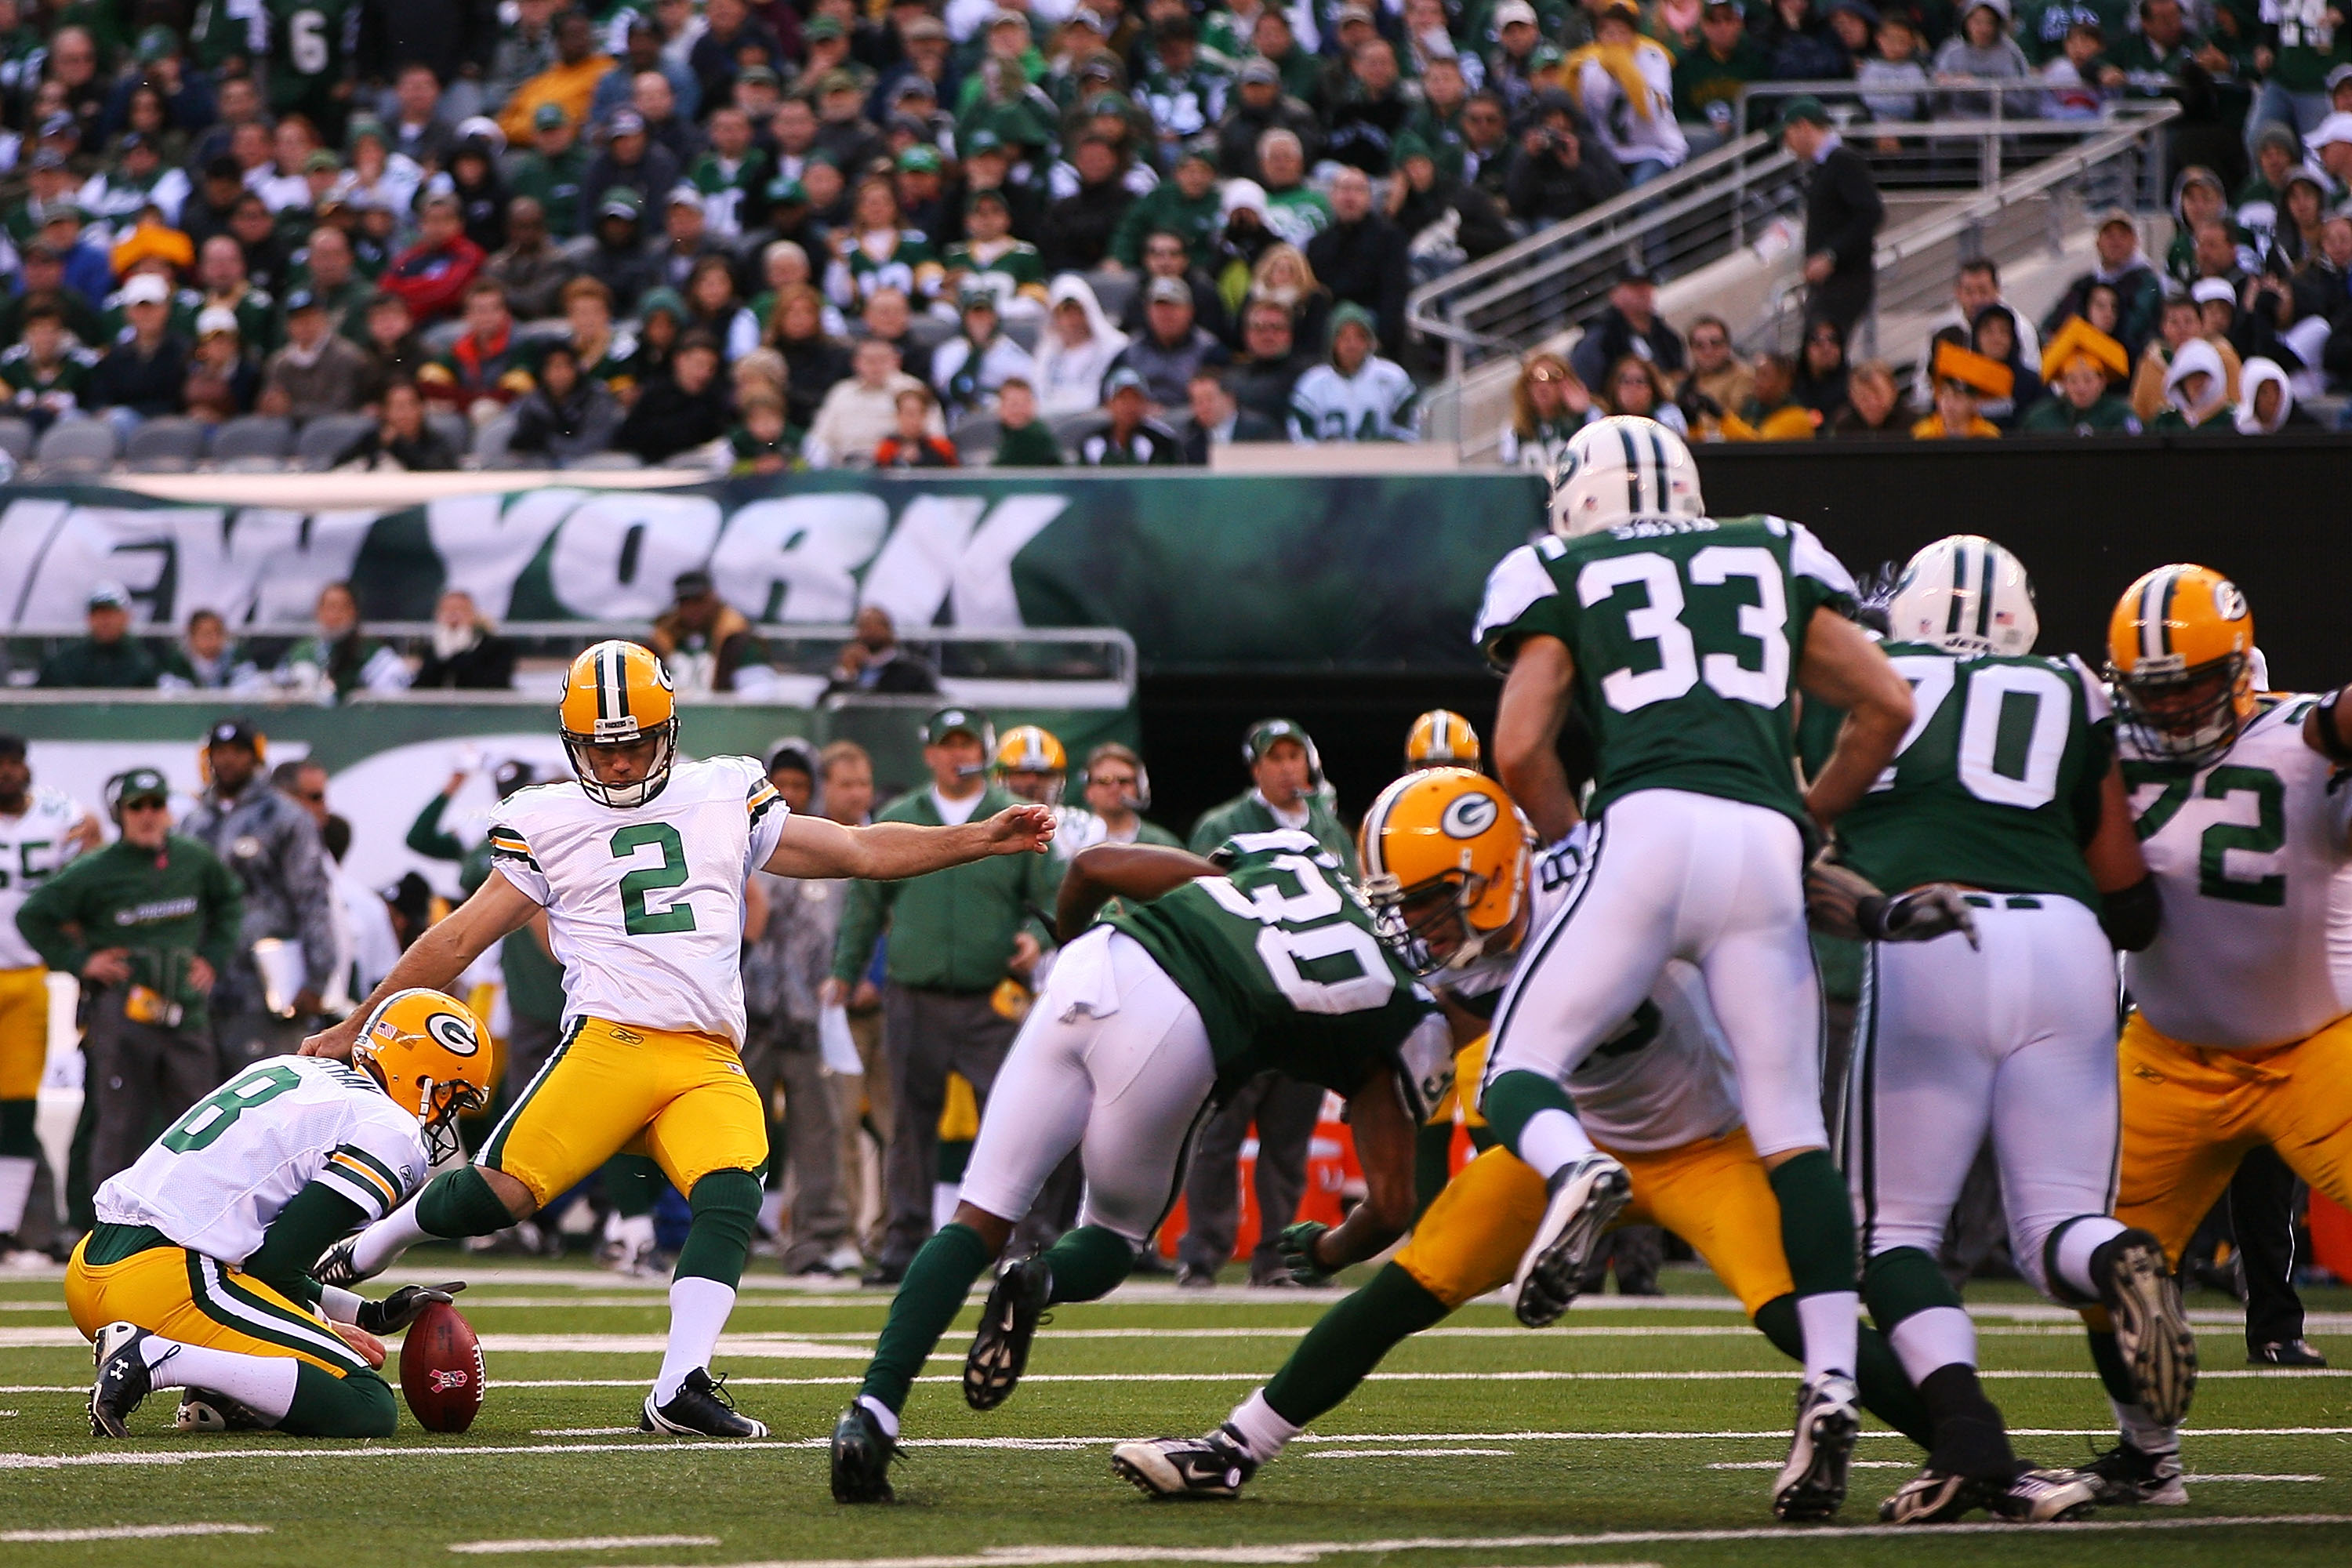 EAST RUTHERFORD, NJ - OCTOBER 31: Mason Crosby #2 of the Green Bay Packers successfully kicks a field goal in the fourth quarter against the New York Jets on October 31, 2010 at the New Meadowlands Stadium in East Rutherford, New Jersey. The Packers defea